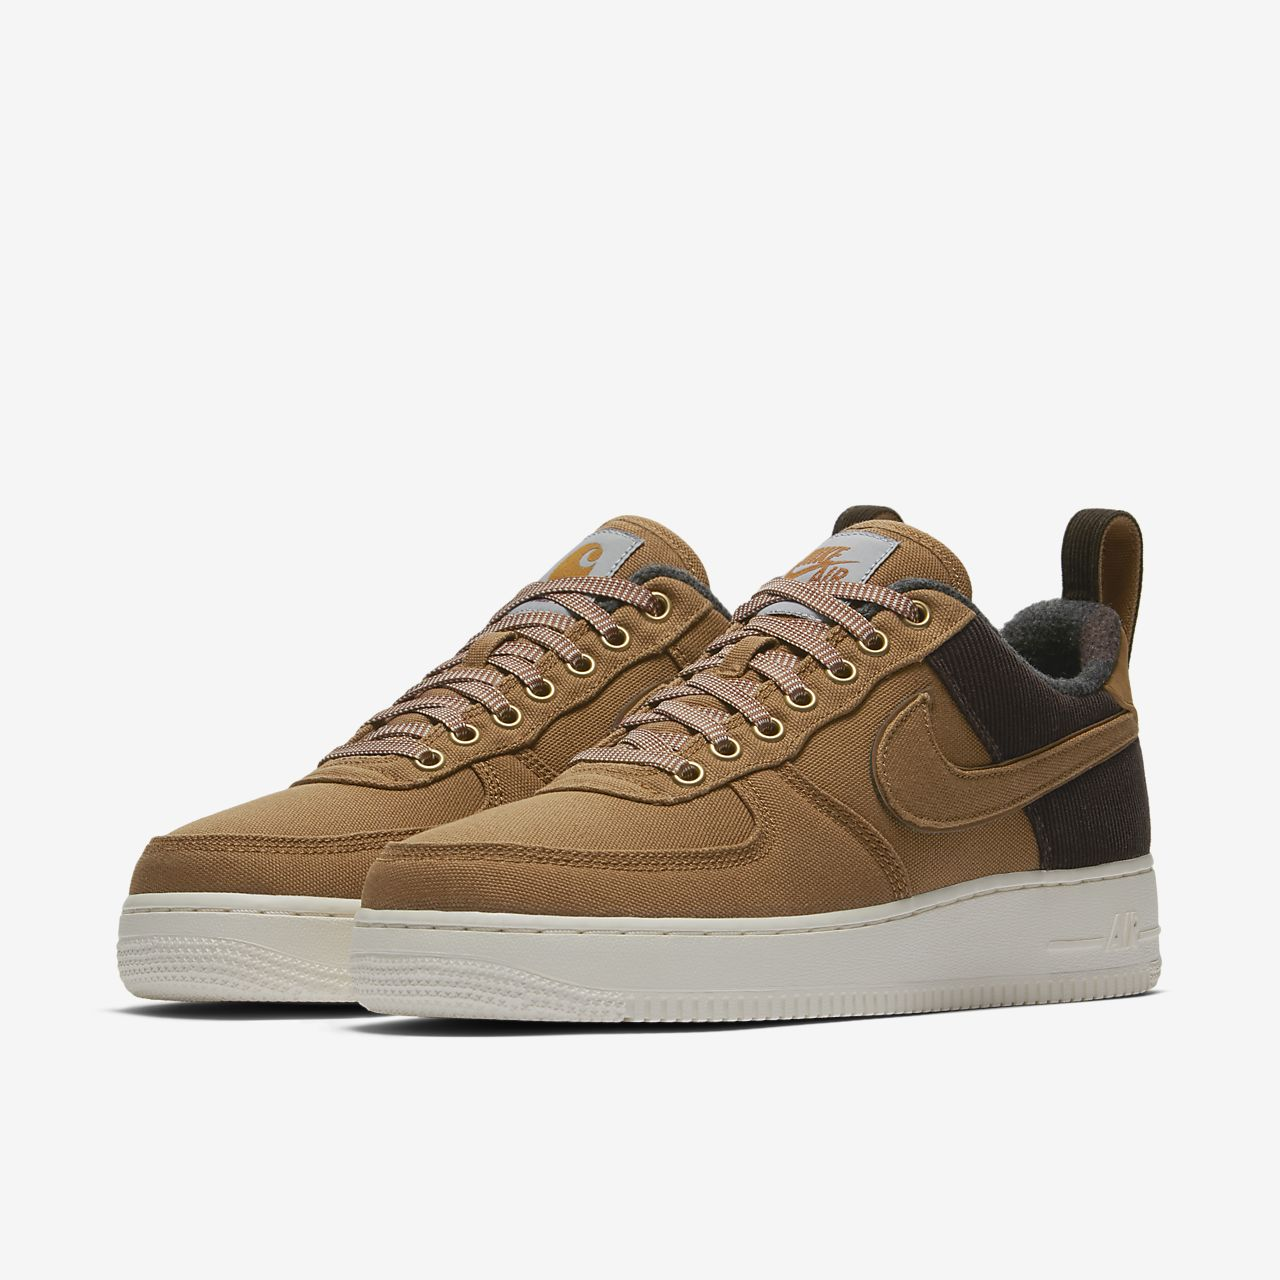 low priced 7e854 98f2c sports shoes df10d c9955 nike air force 1 beige pink white mænd ...